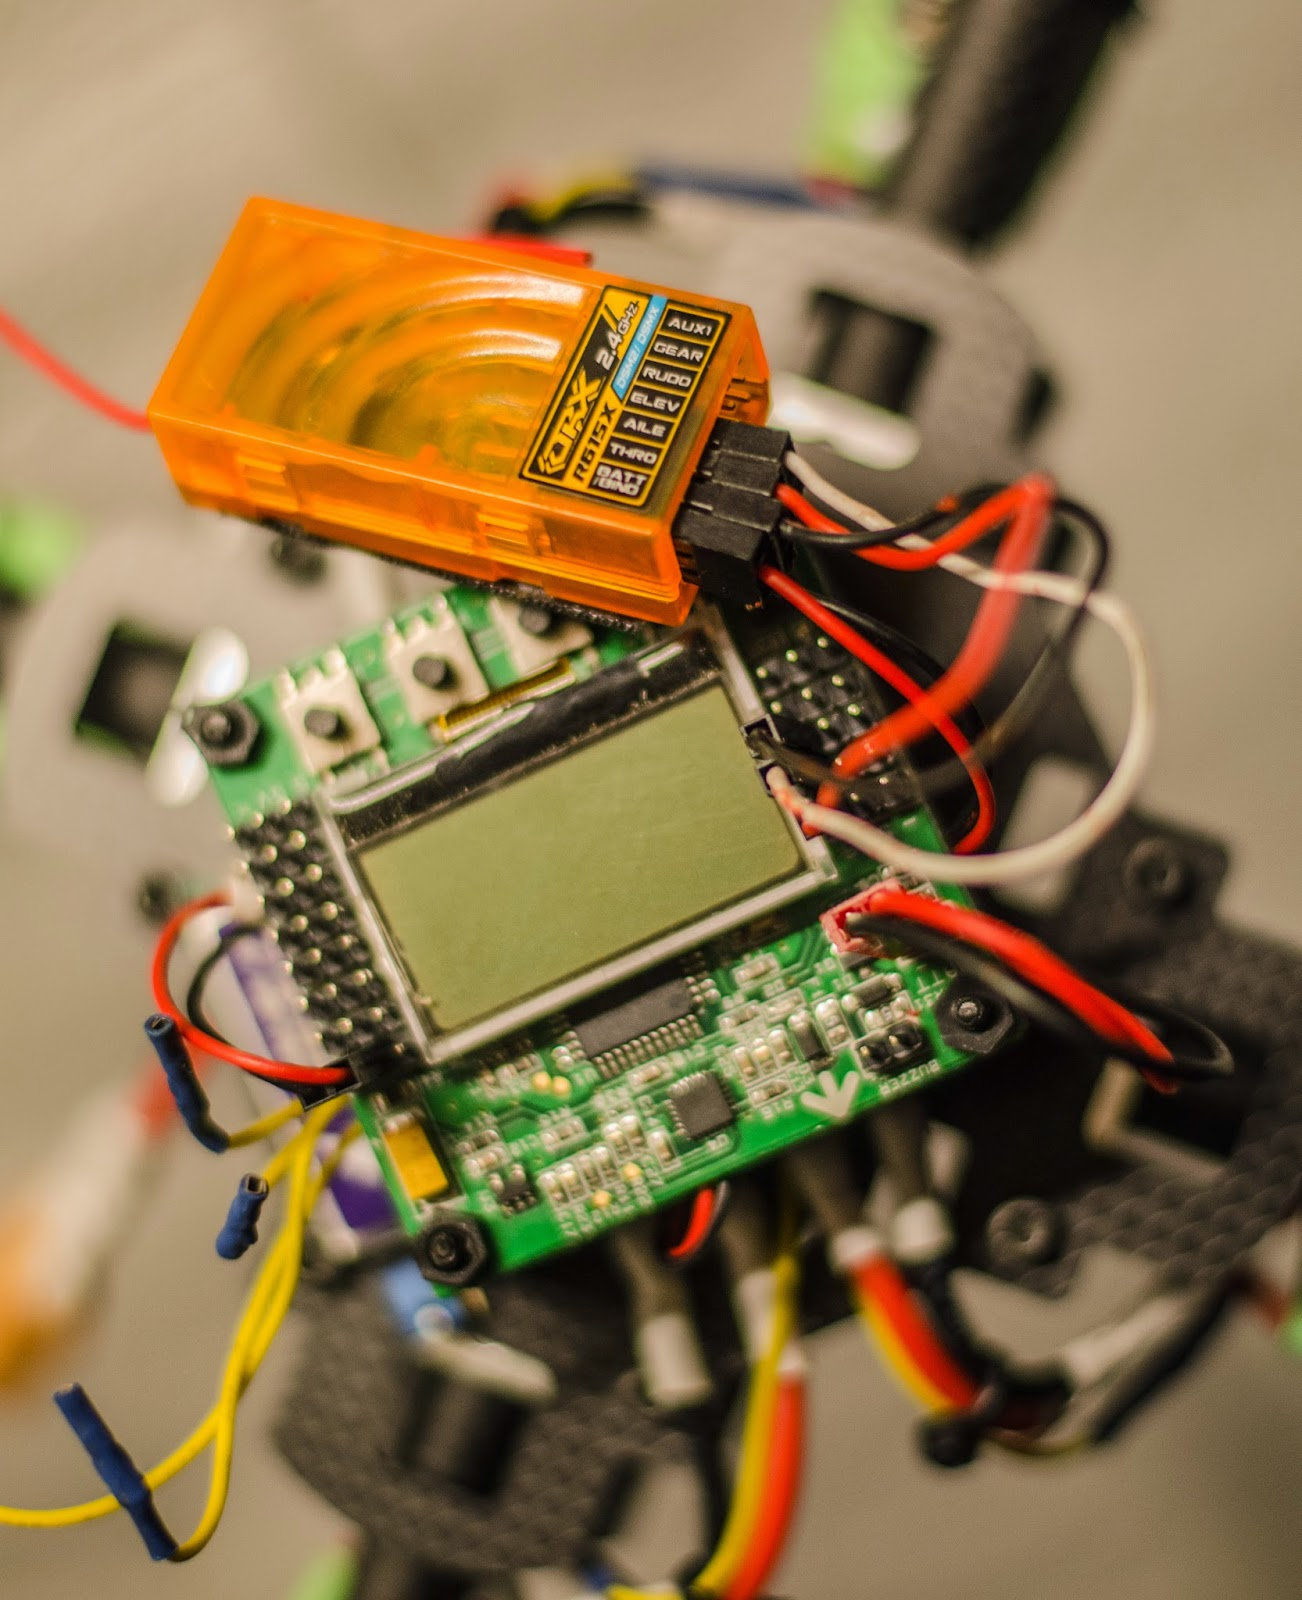 Kk2 1 Wiring Diagram Library Tricopter Kk Board Elevation On The Rx Receiver Corresponds With Pin2 And Rudder Sits Pin 4